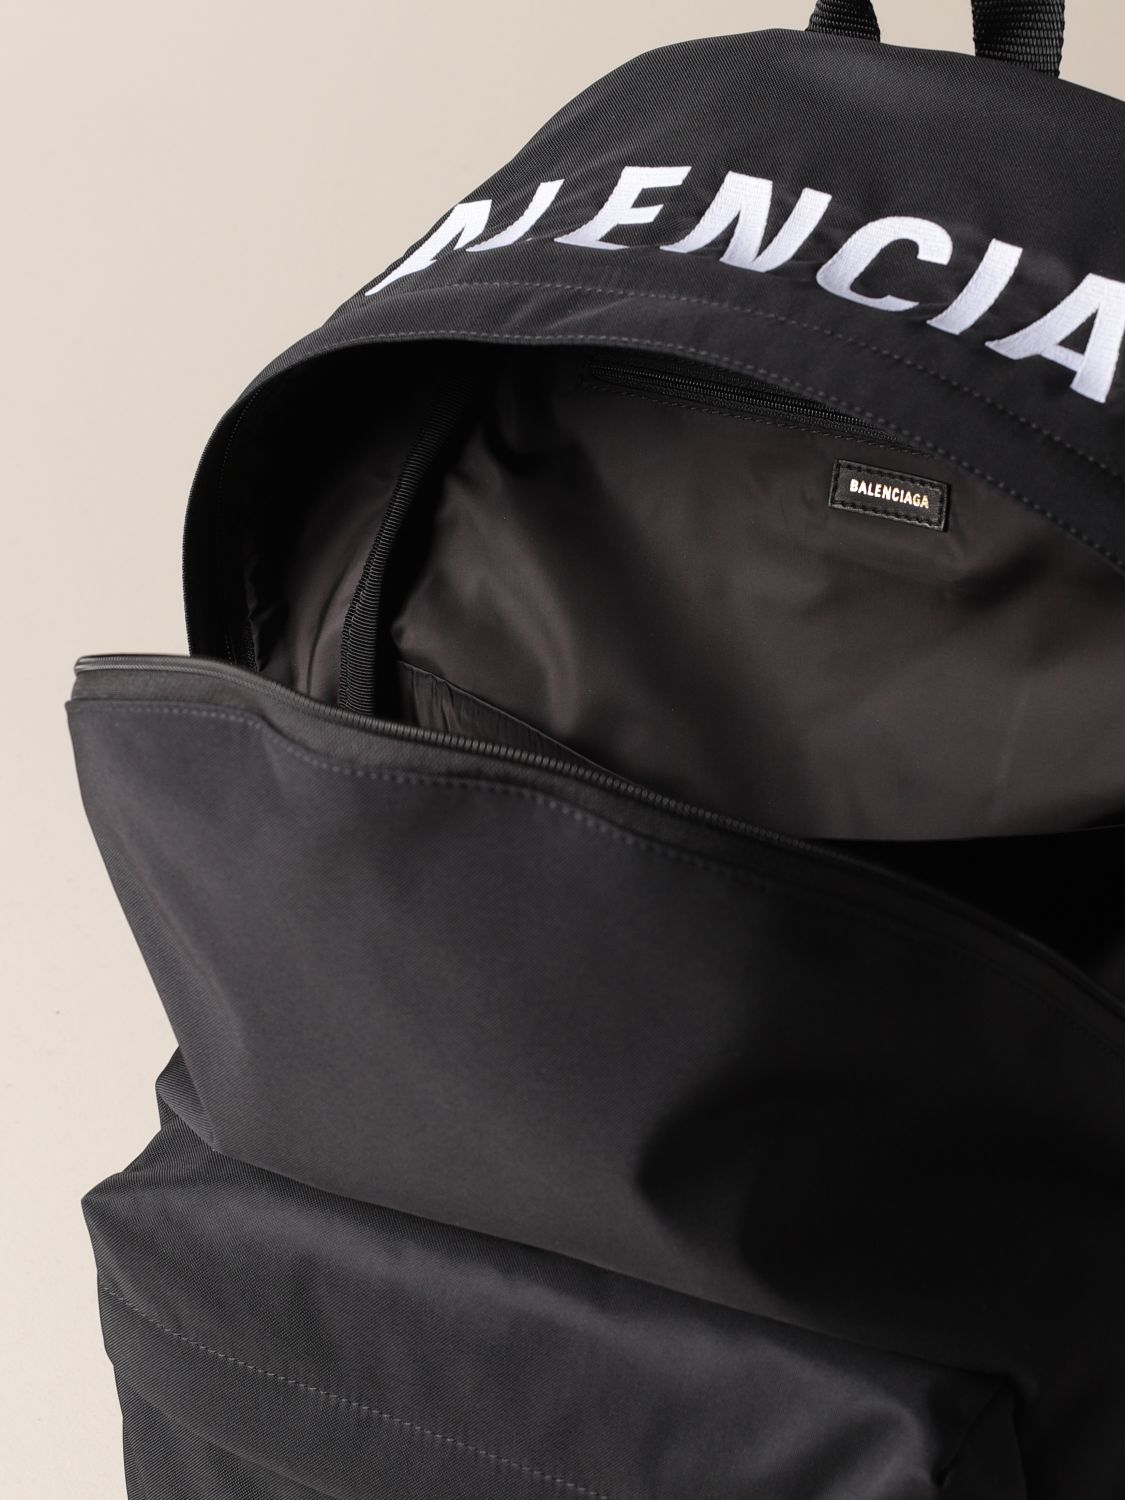 Shoulder bag Balenciaga: Balenciaga nylon backpack black 5